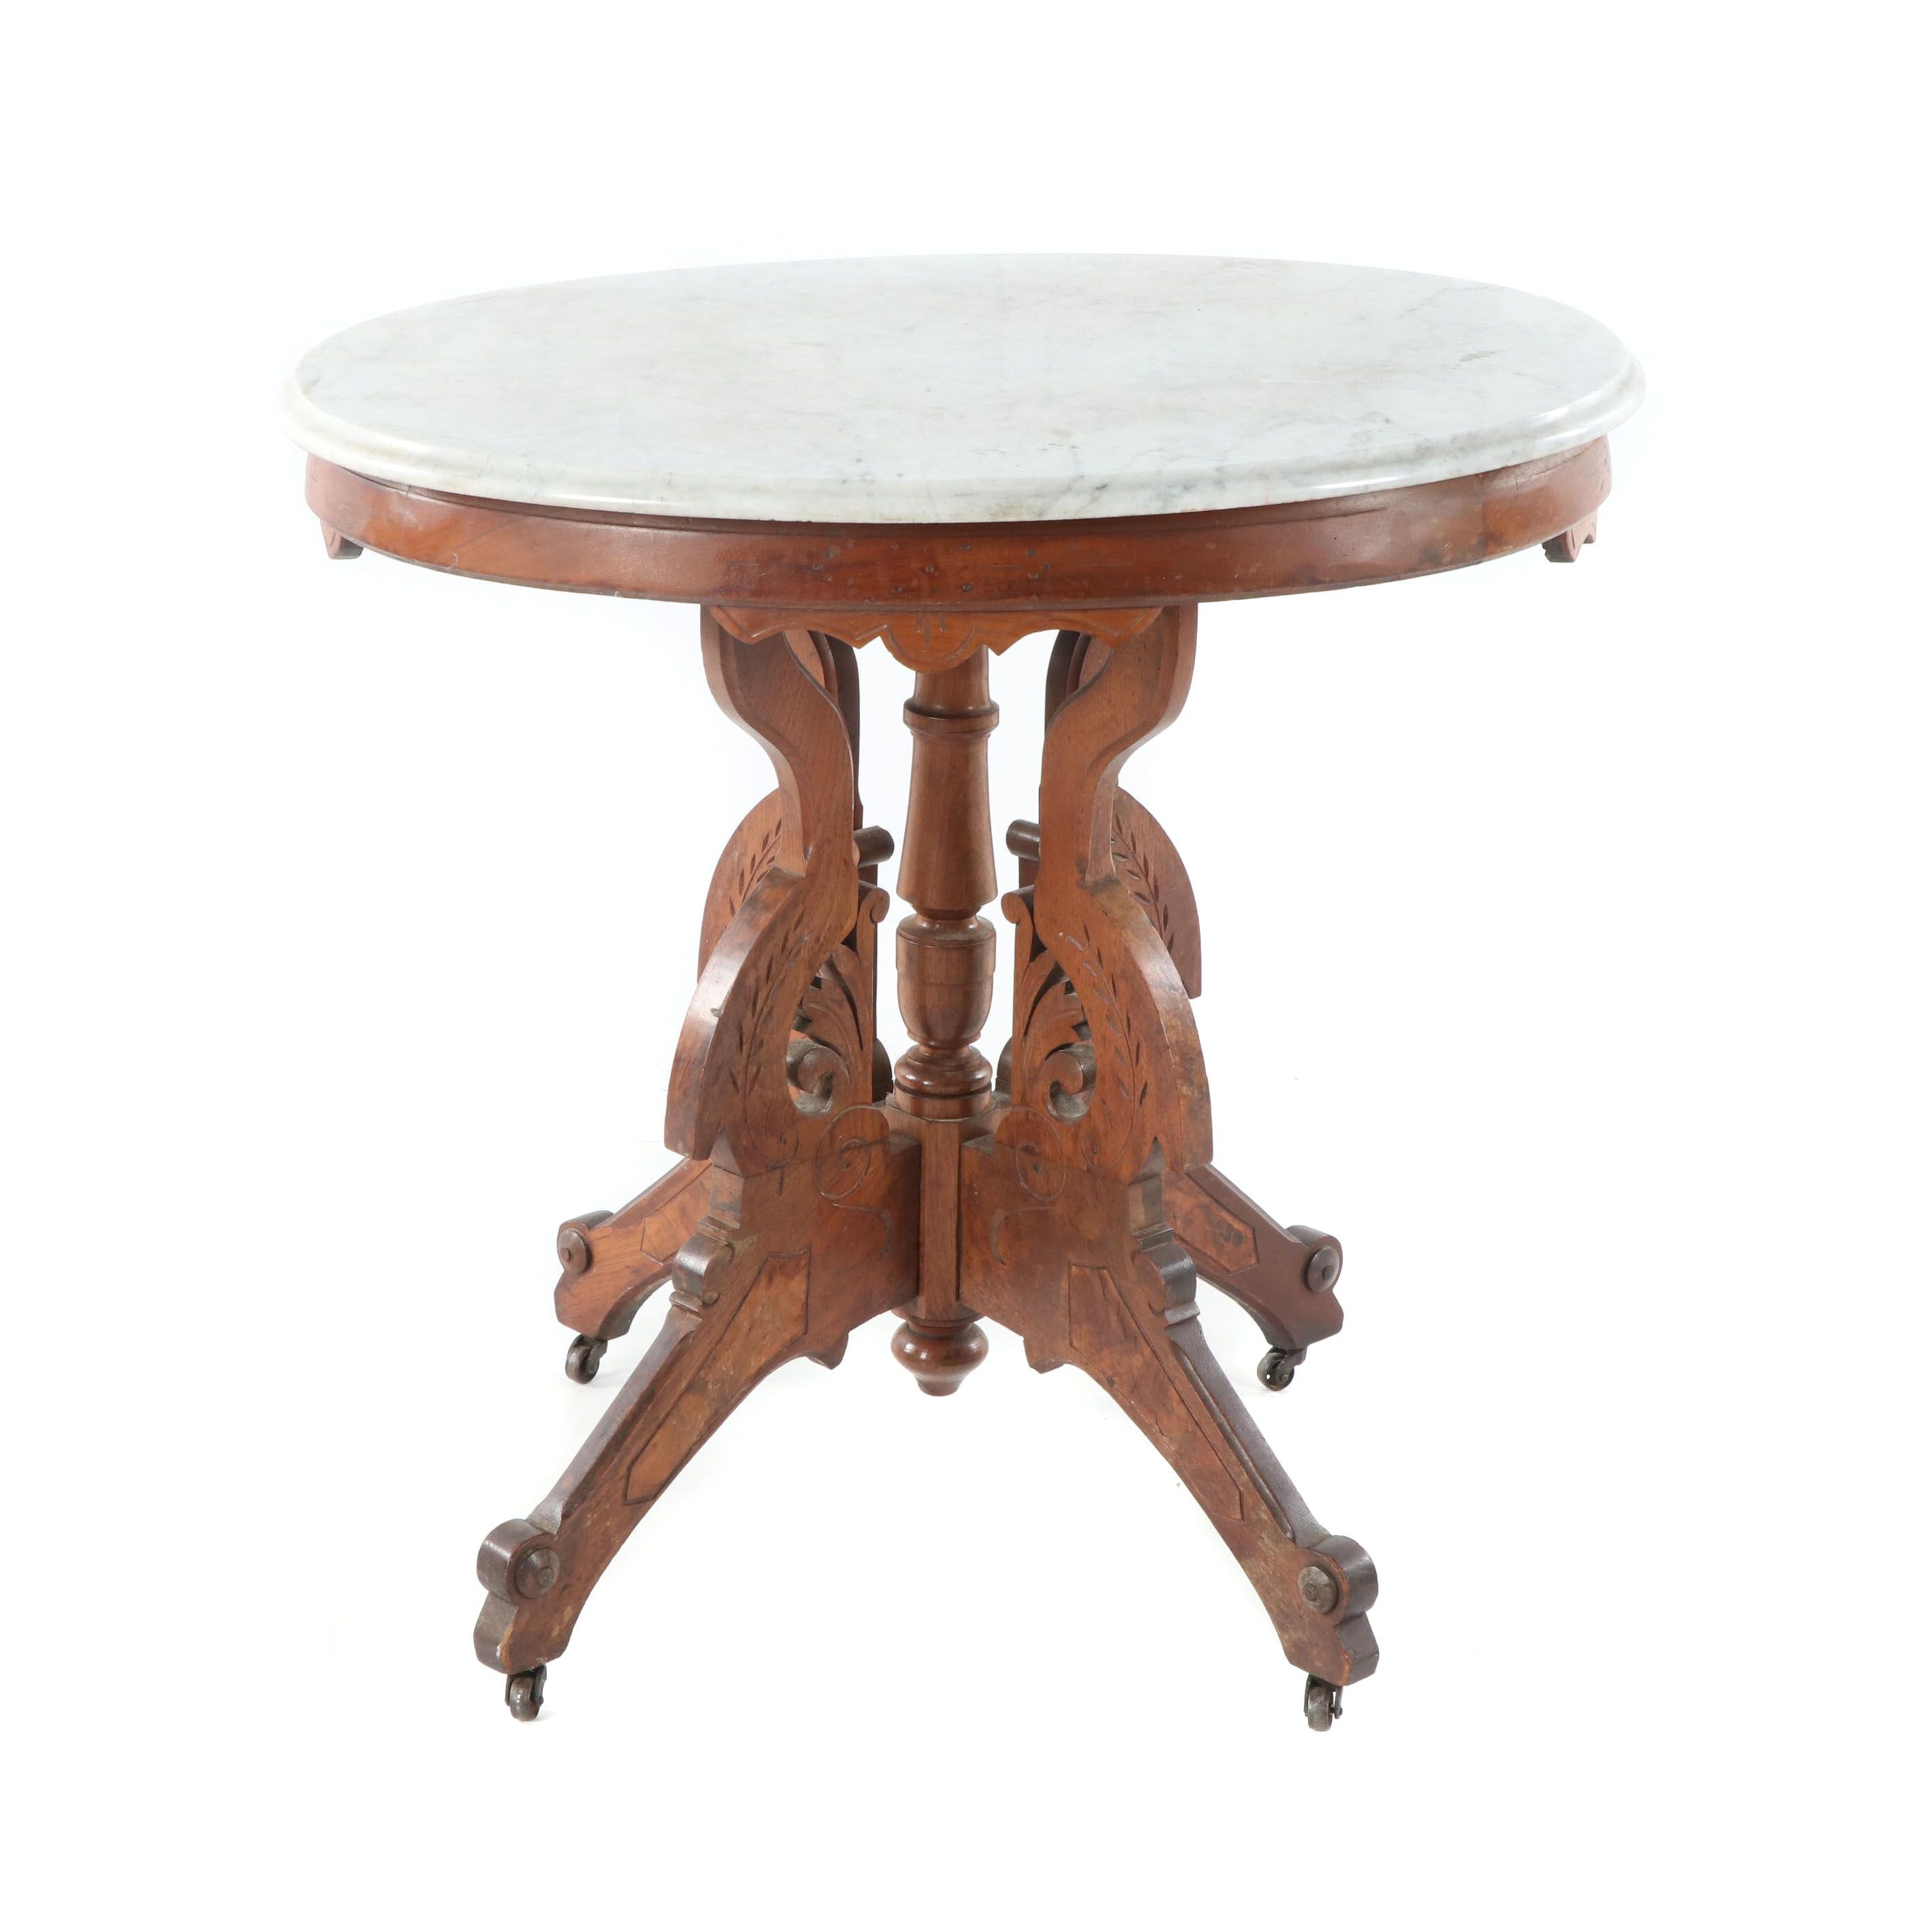 Victorian Eastlake Walnut and Marble Side Table on Casters, Late 19th Century